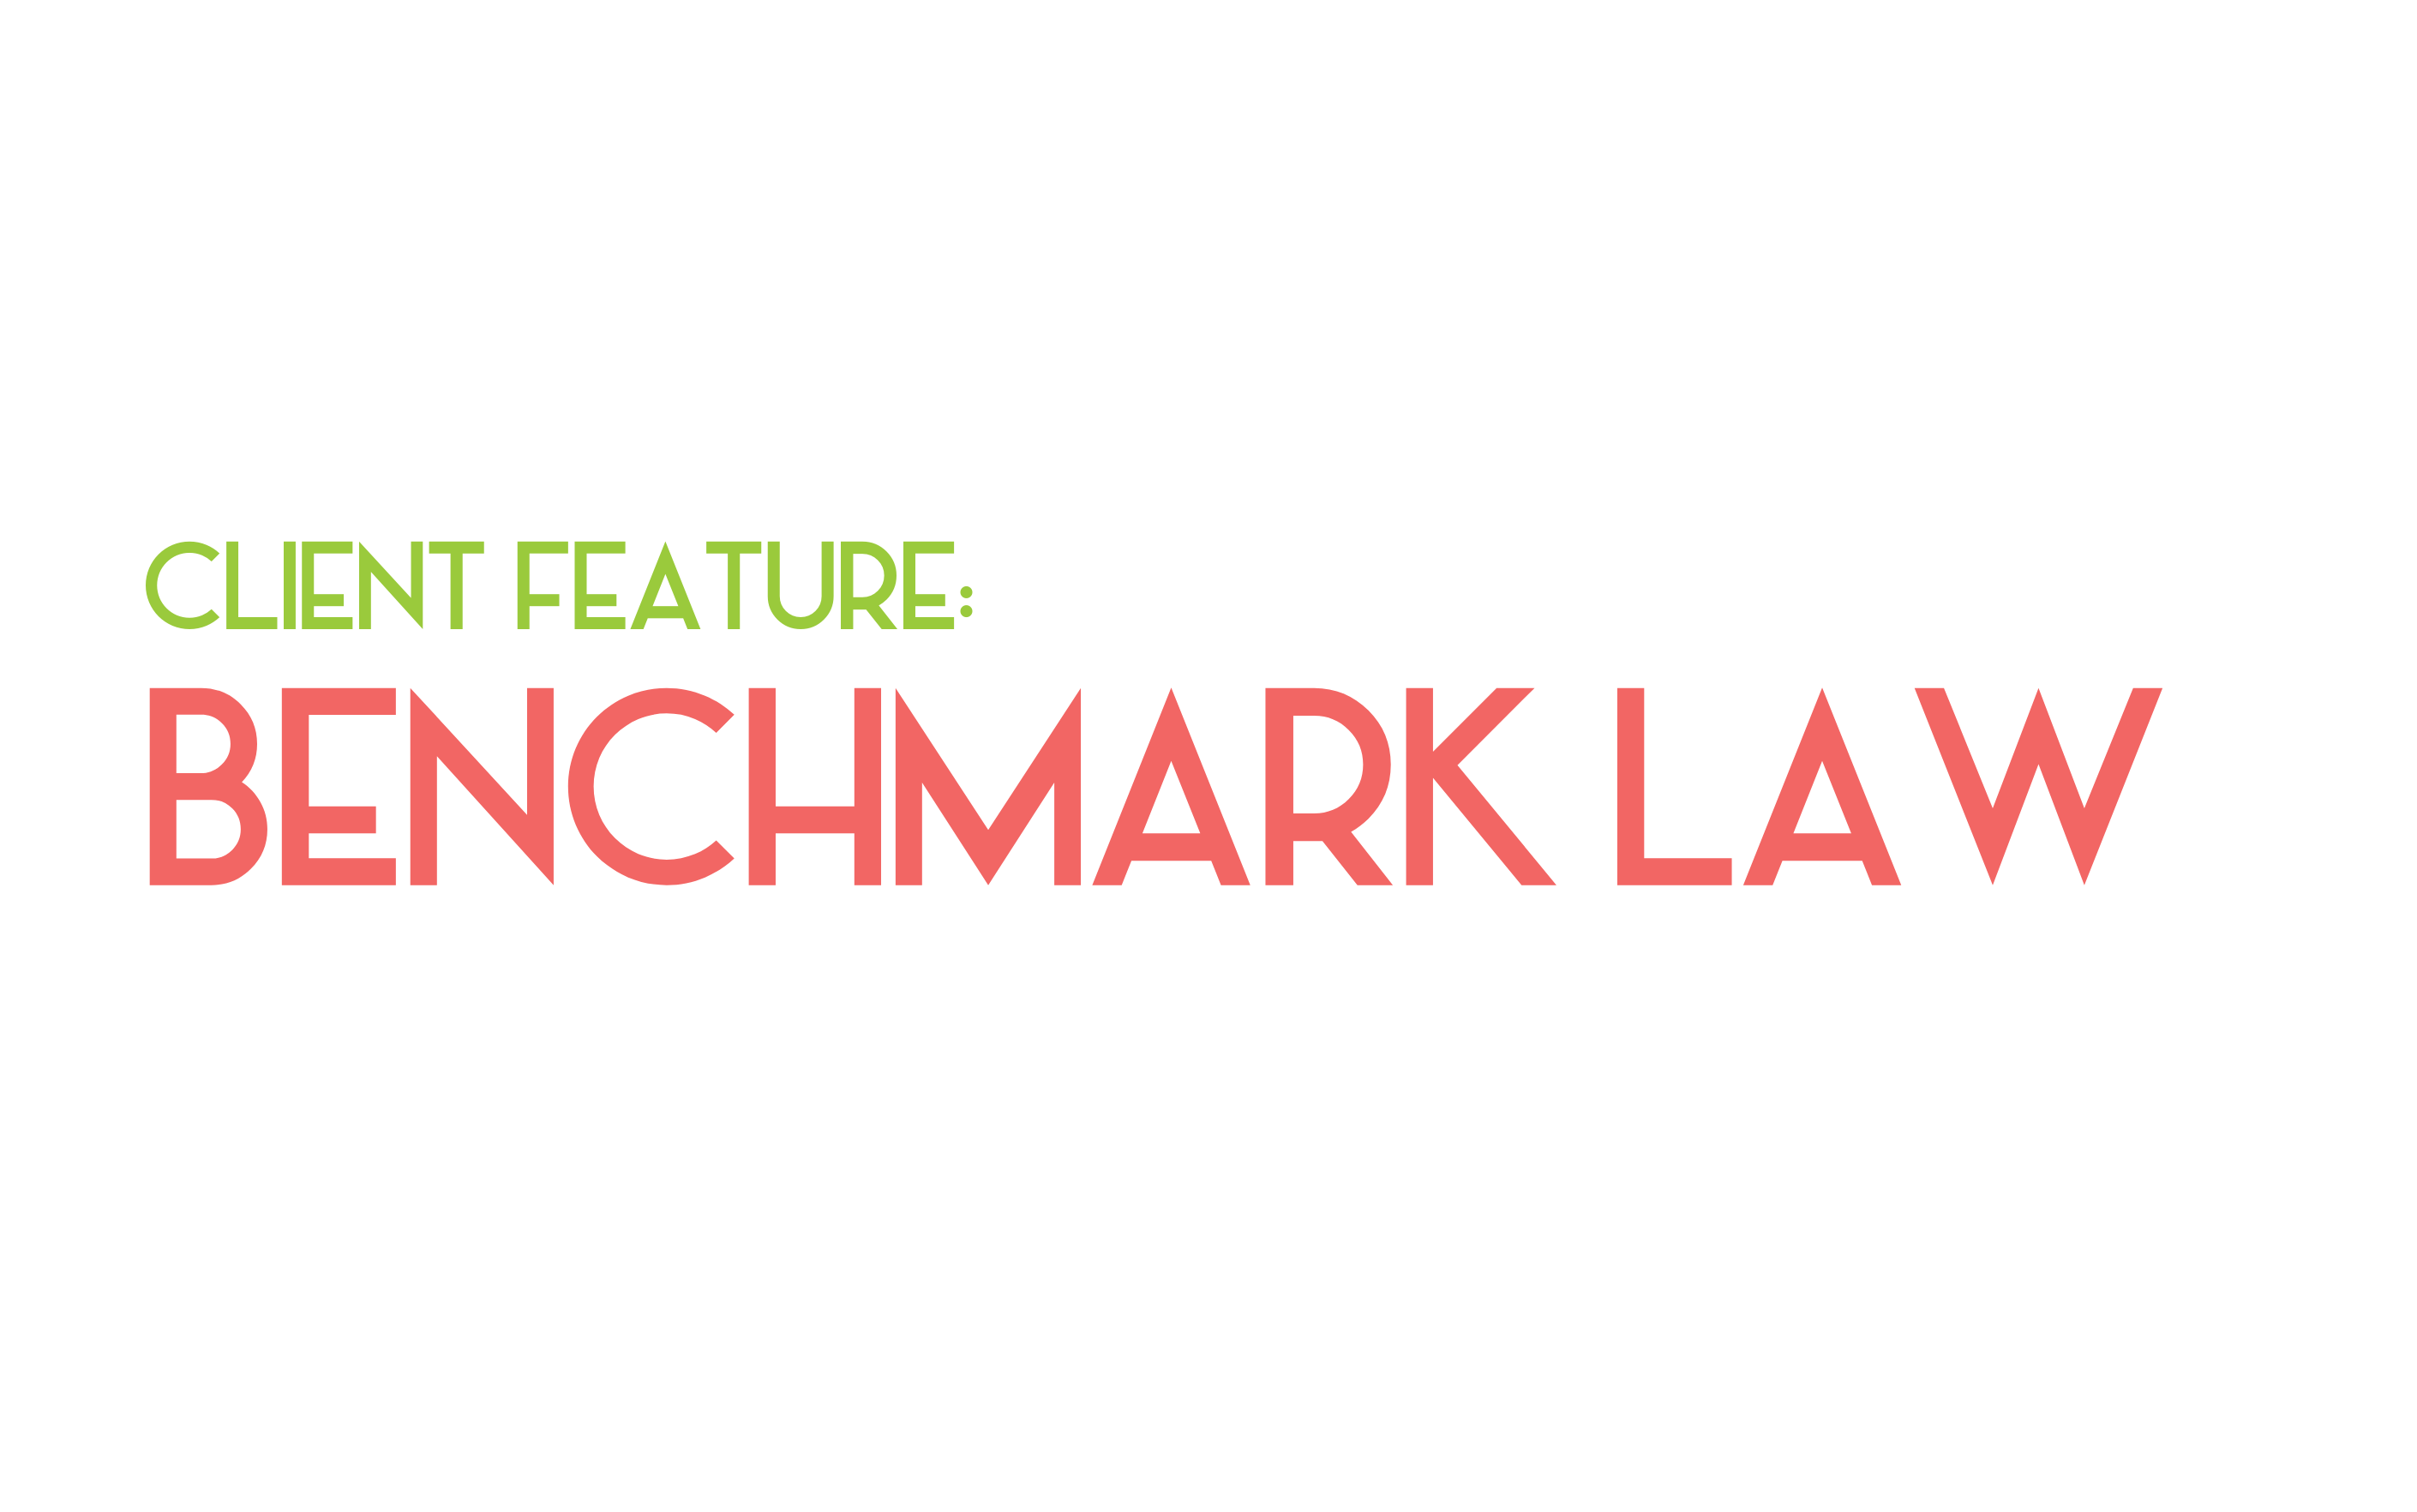 Client Feature: Benchmark Law